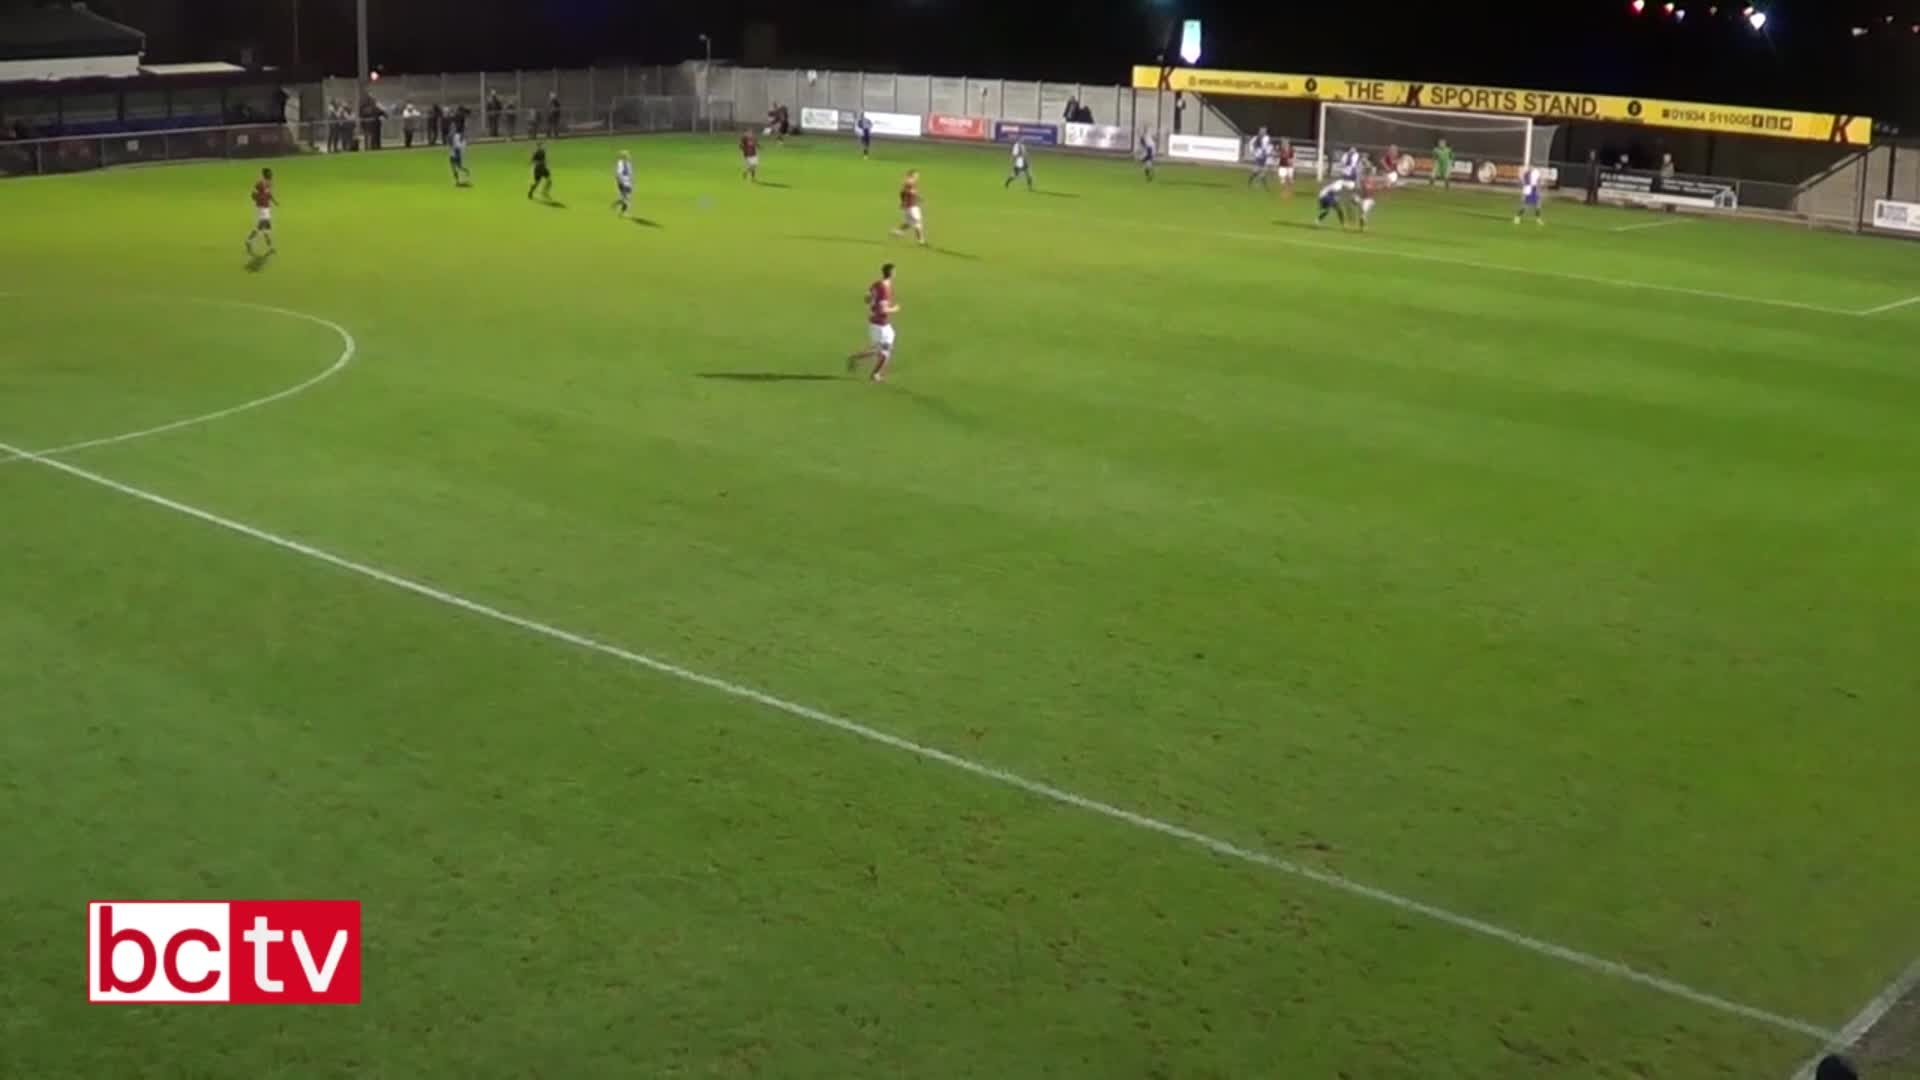 Highlights: Bristol City Under-23s 3-2 Bristol Rovers Under-23s thumbnail